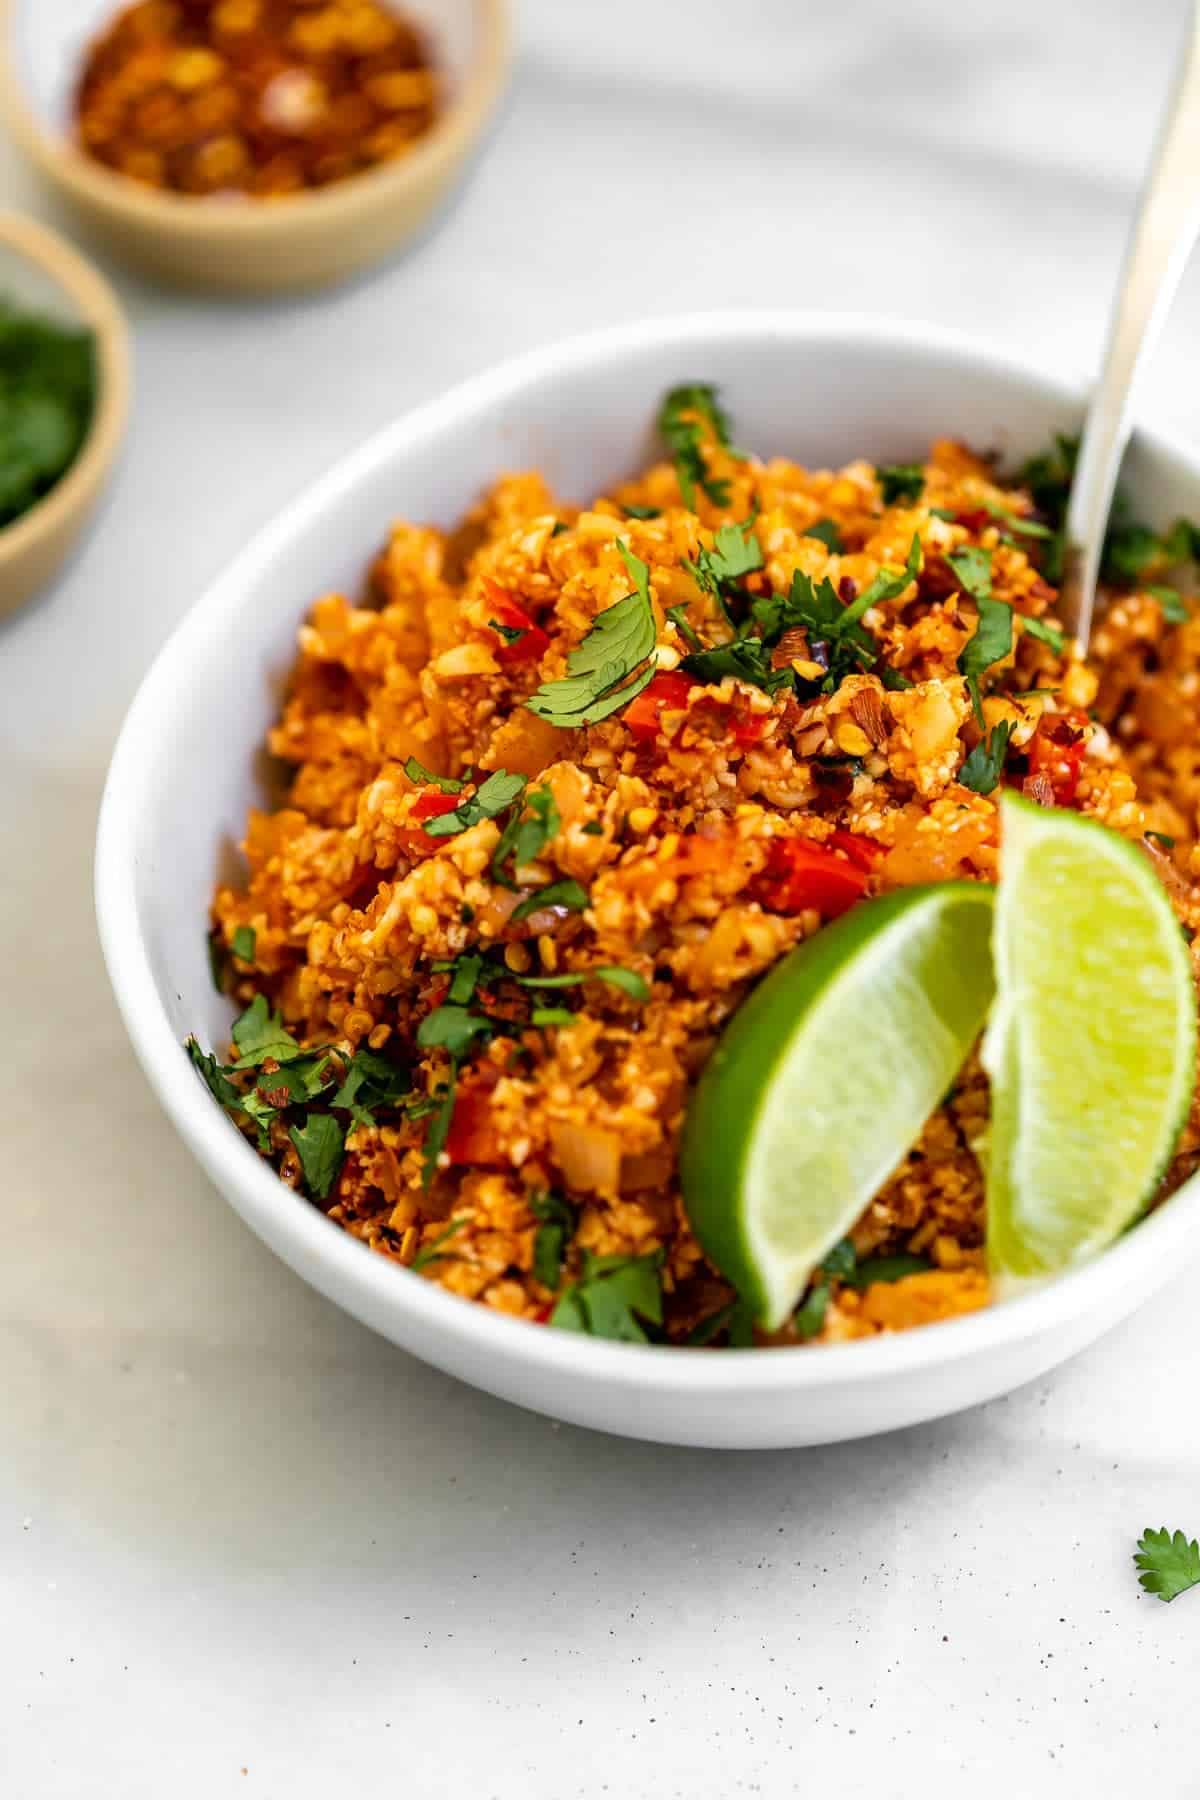 Vegan mexican cauliflower rice in a bowl with cilantro.